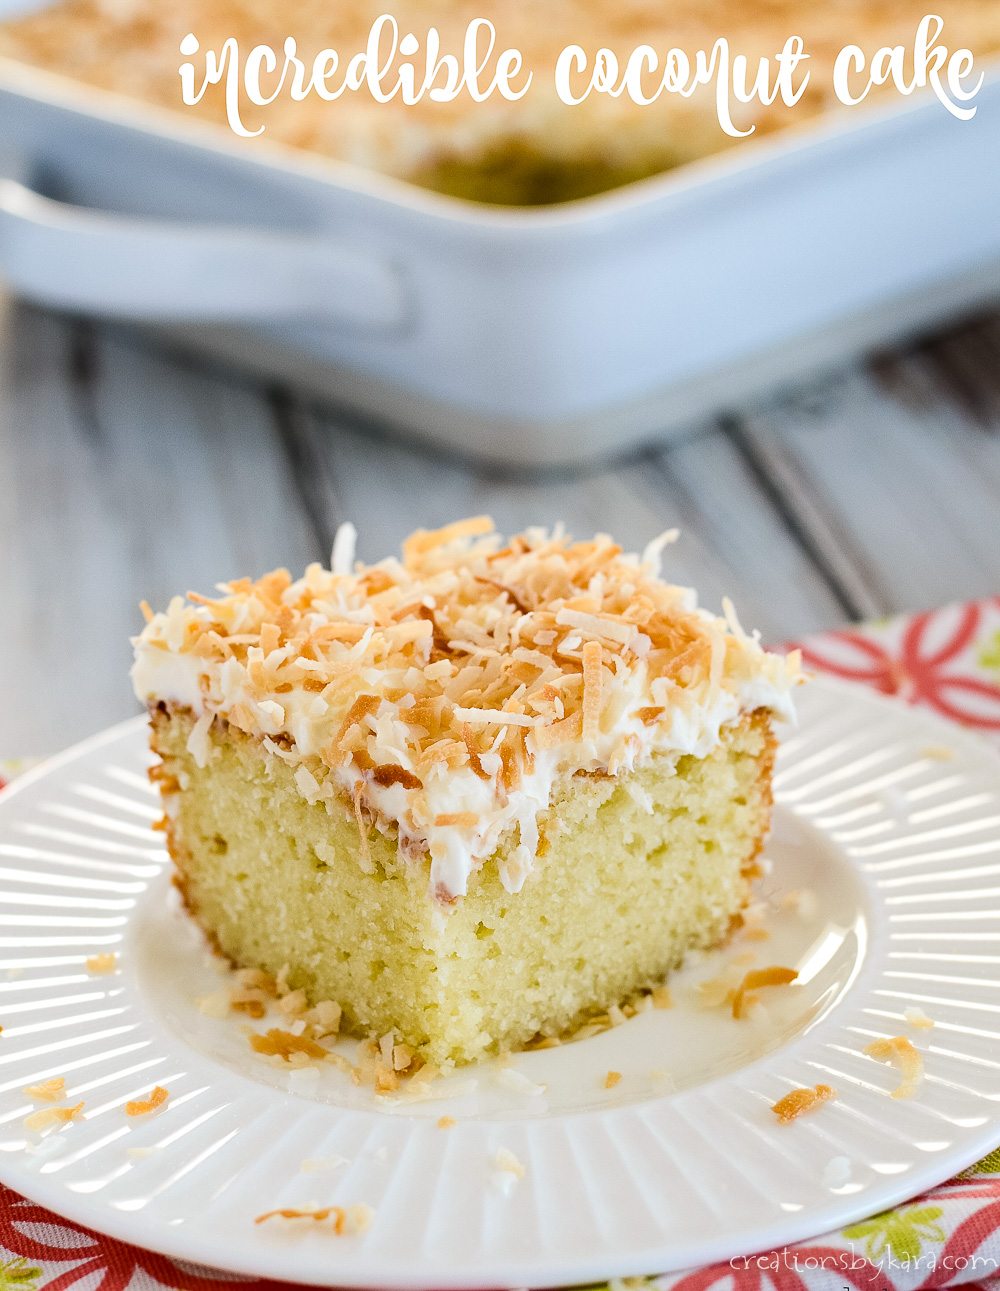 INCREDIBLE EASY COCONUT CAKE RECIPE FROM SCRATCH CREATIONS BY KARA